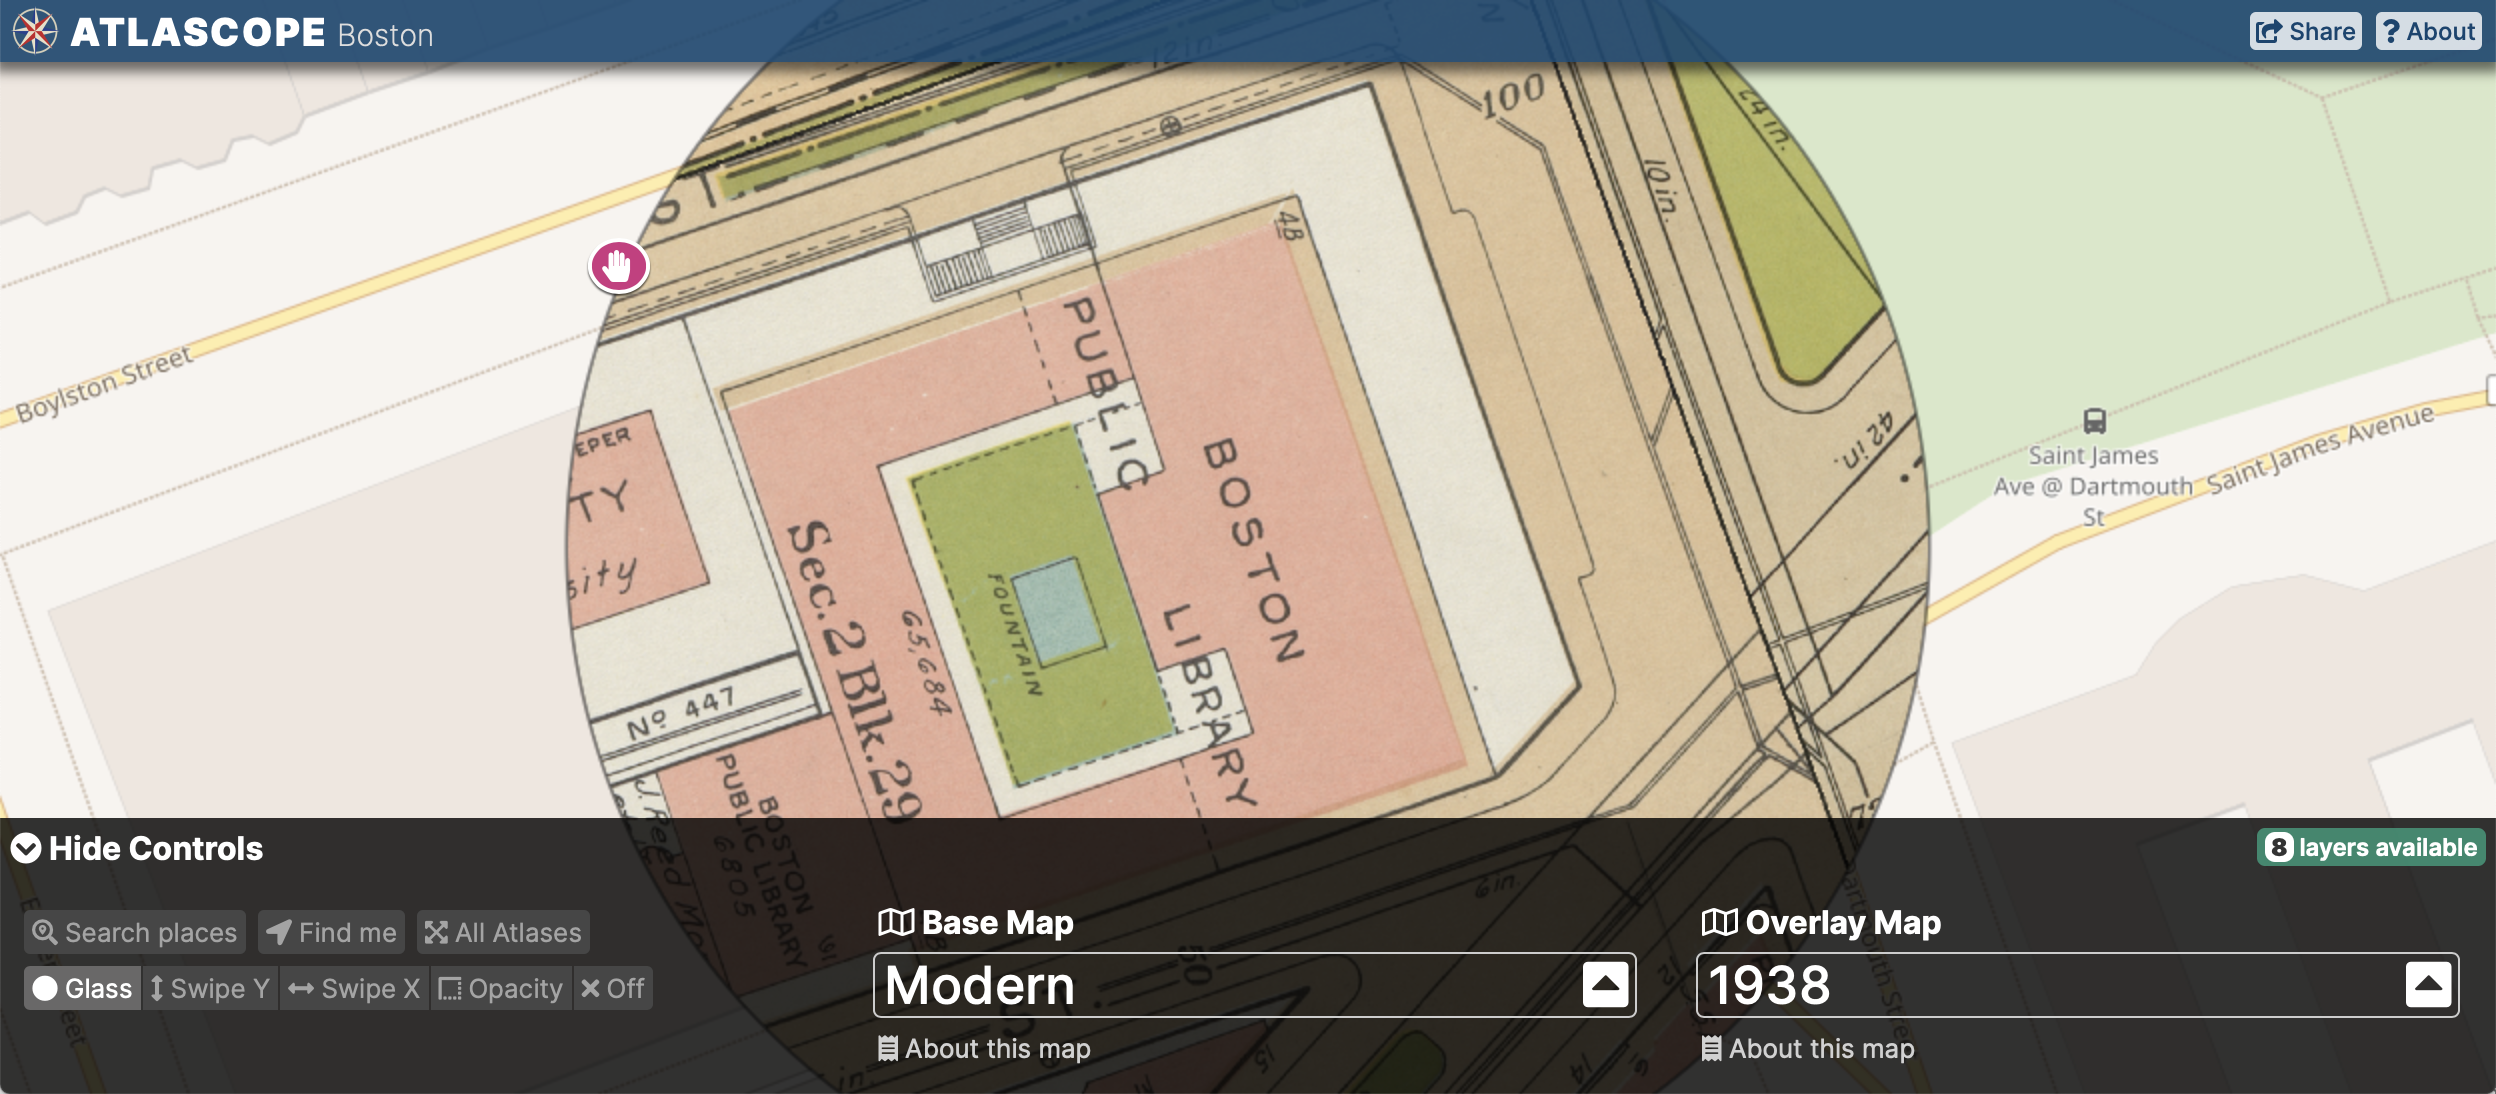 View of the Atlascope tool centered on the BPL in Copley Square